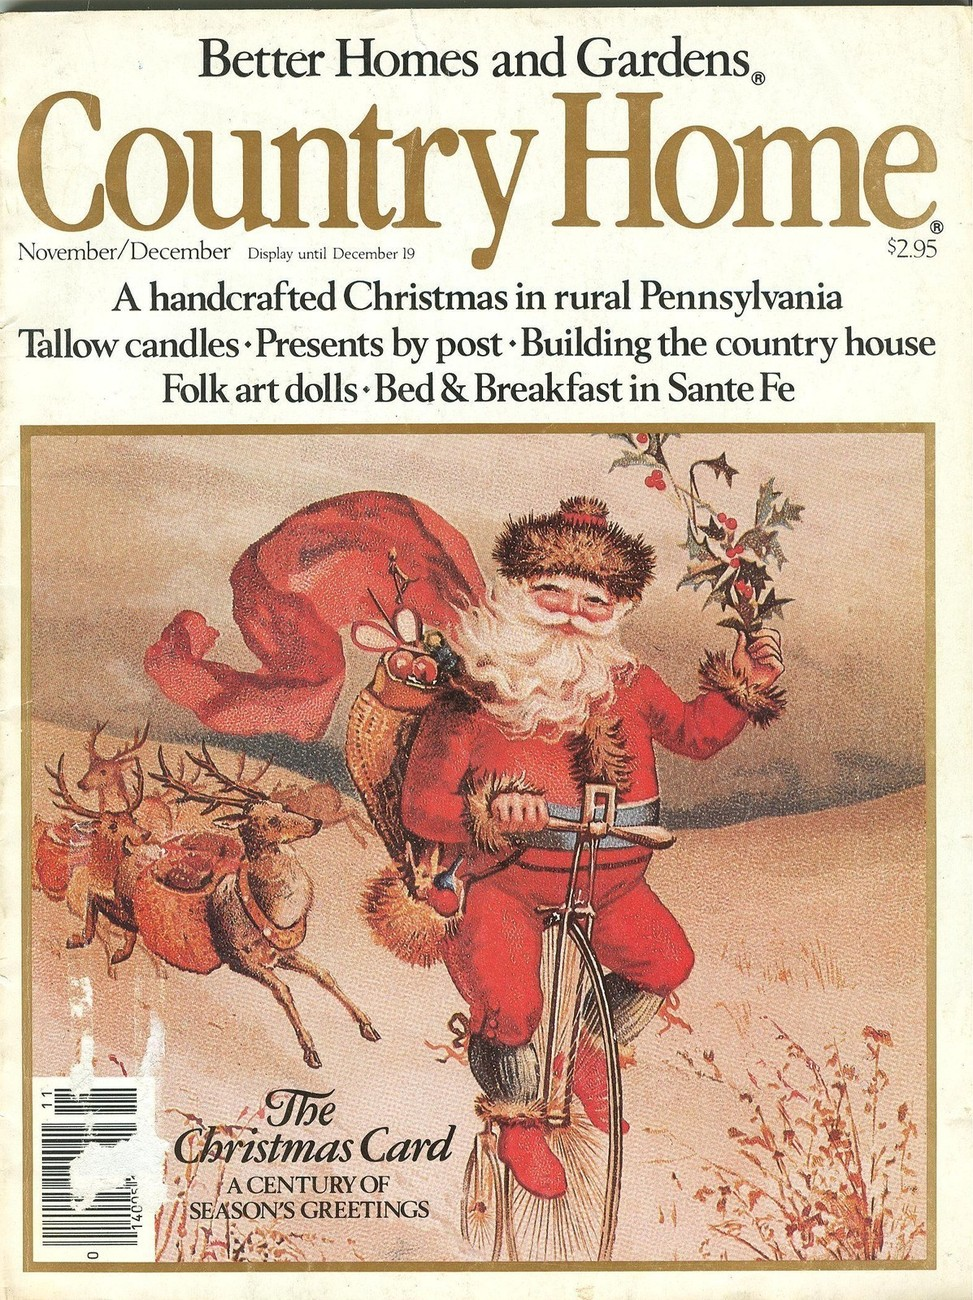 BH&G Country Home November/December 1984-Folk Art Dolls;Handcrafted Christmas